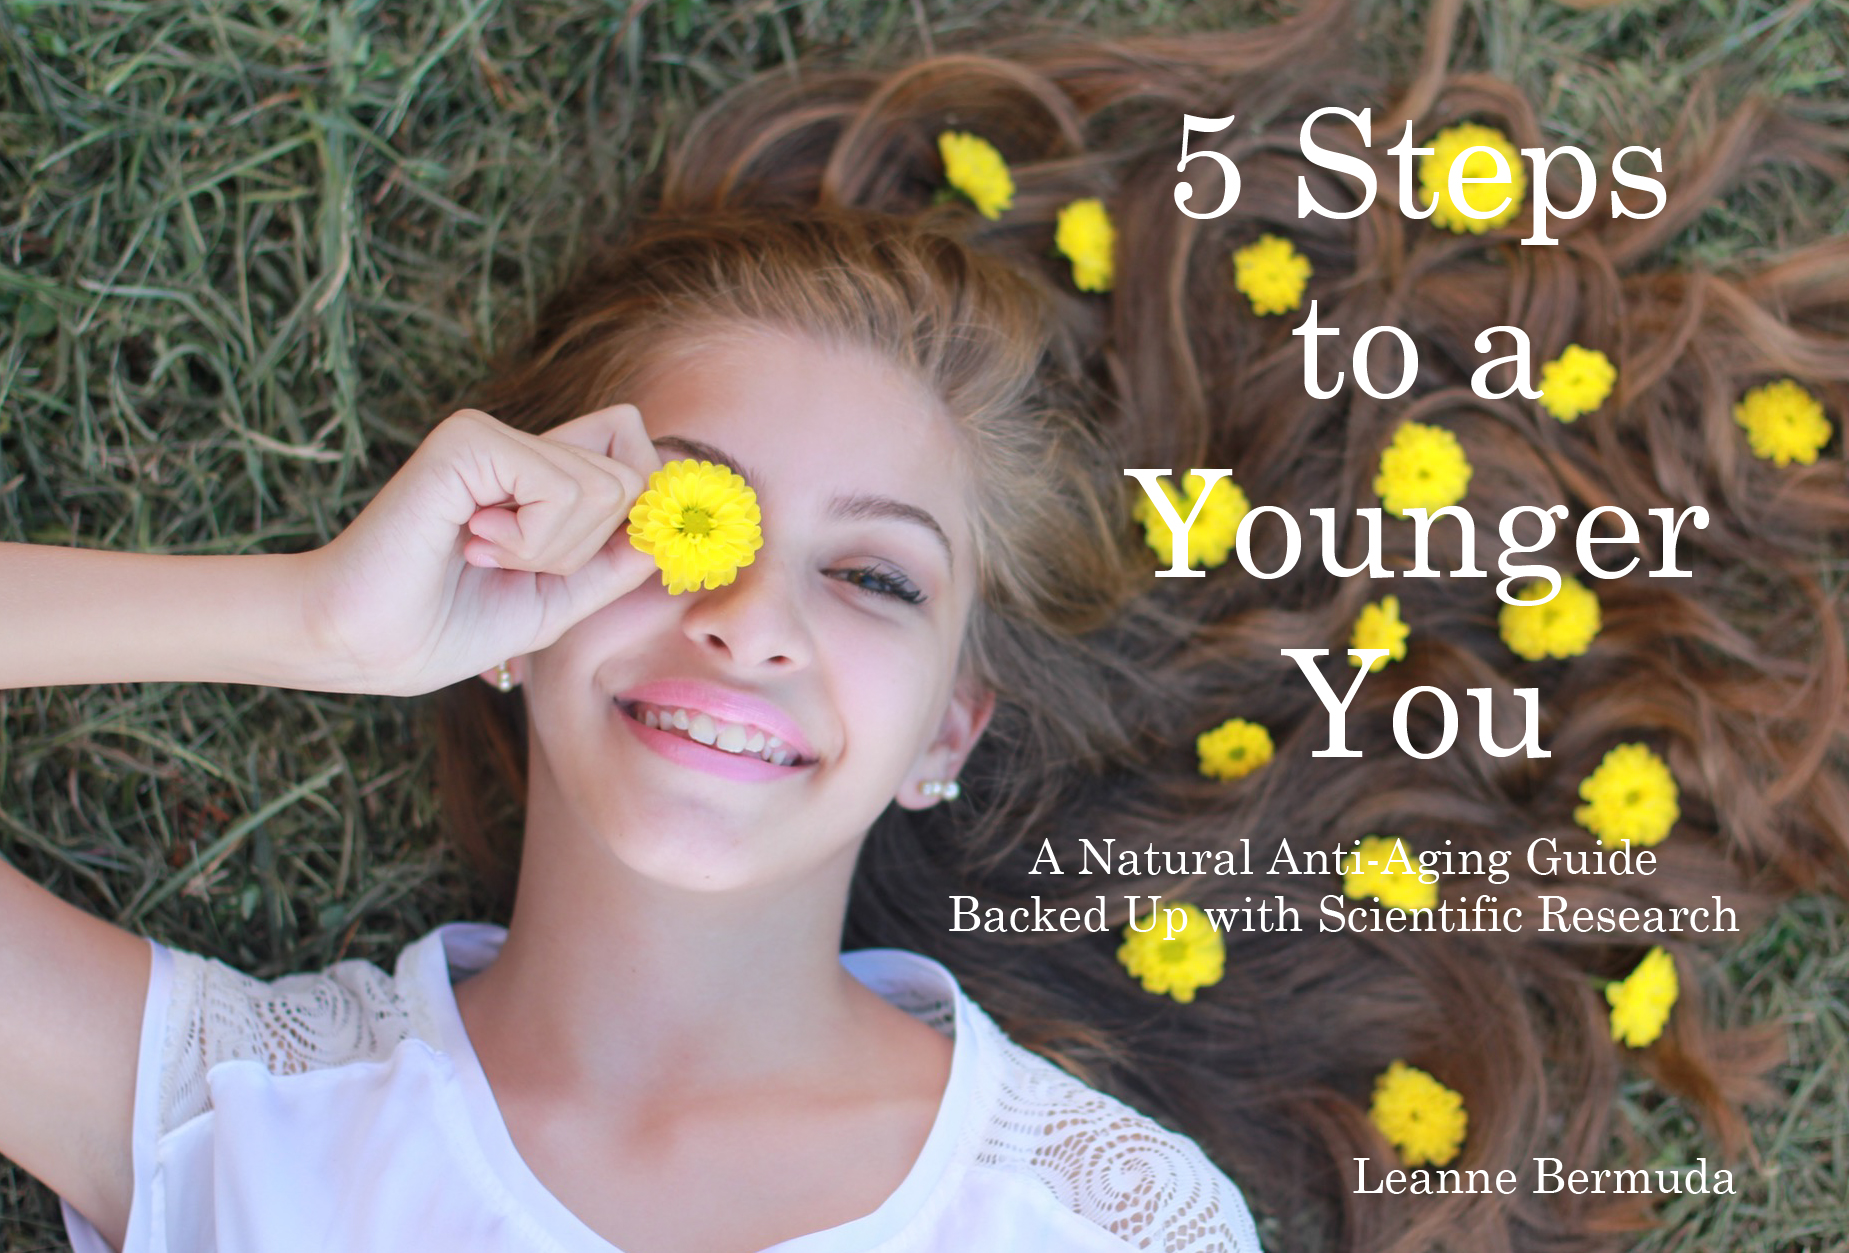 5 steps to a younger you - a natural anti-aging guide backed up with scientific research